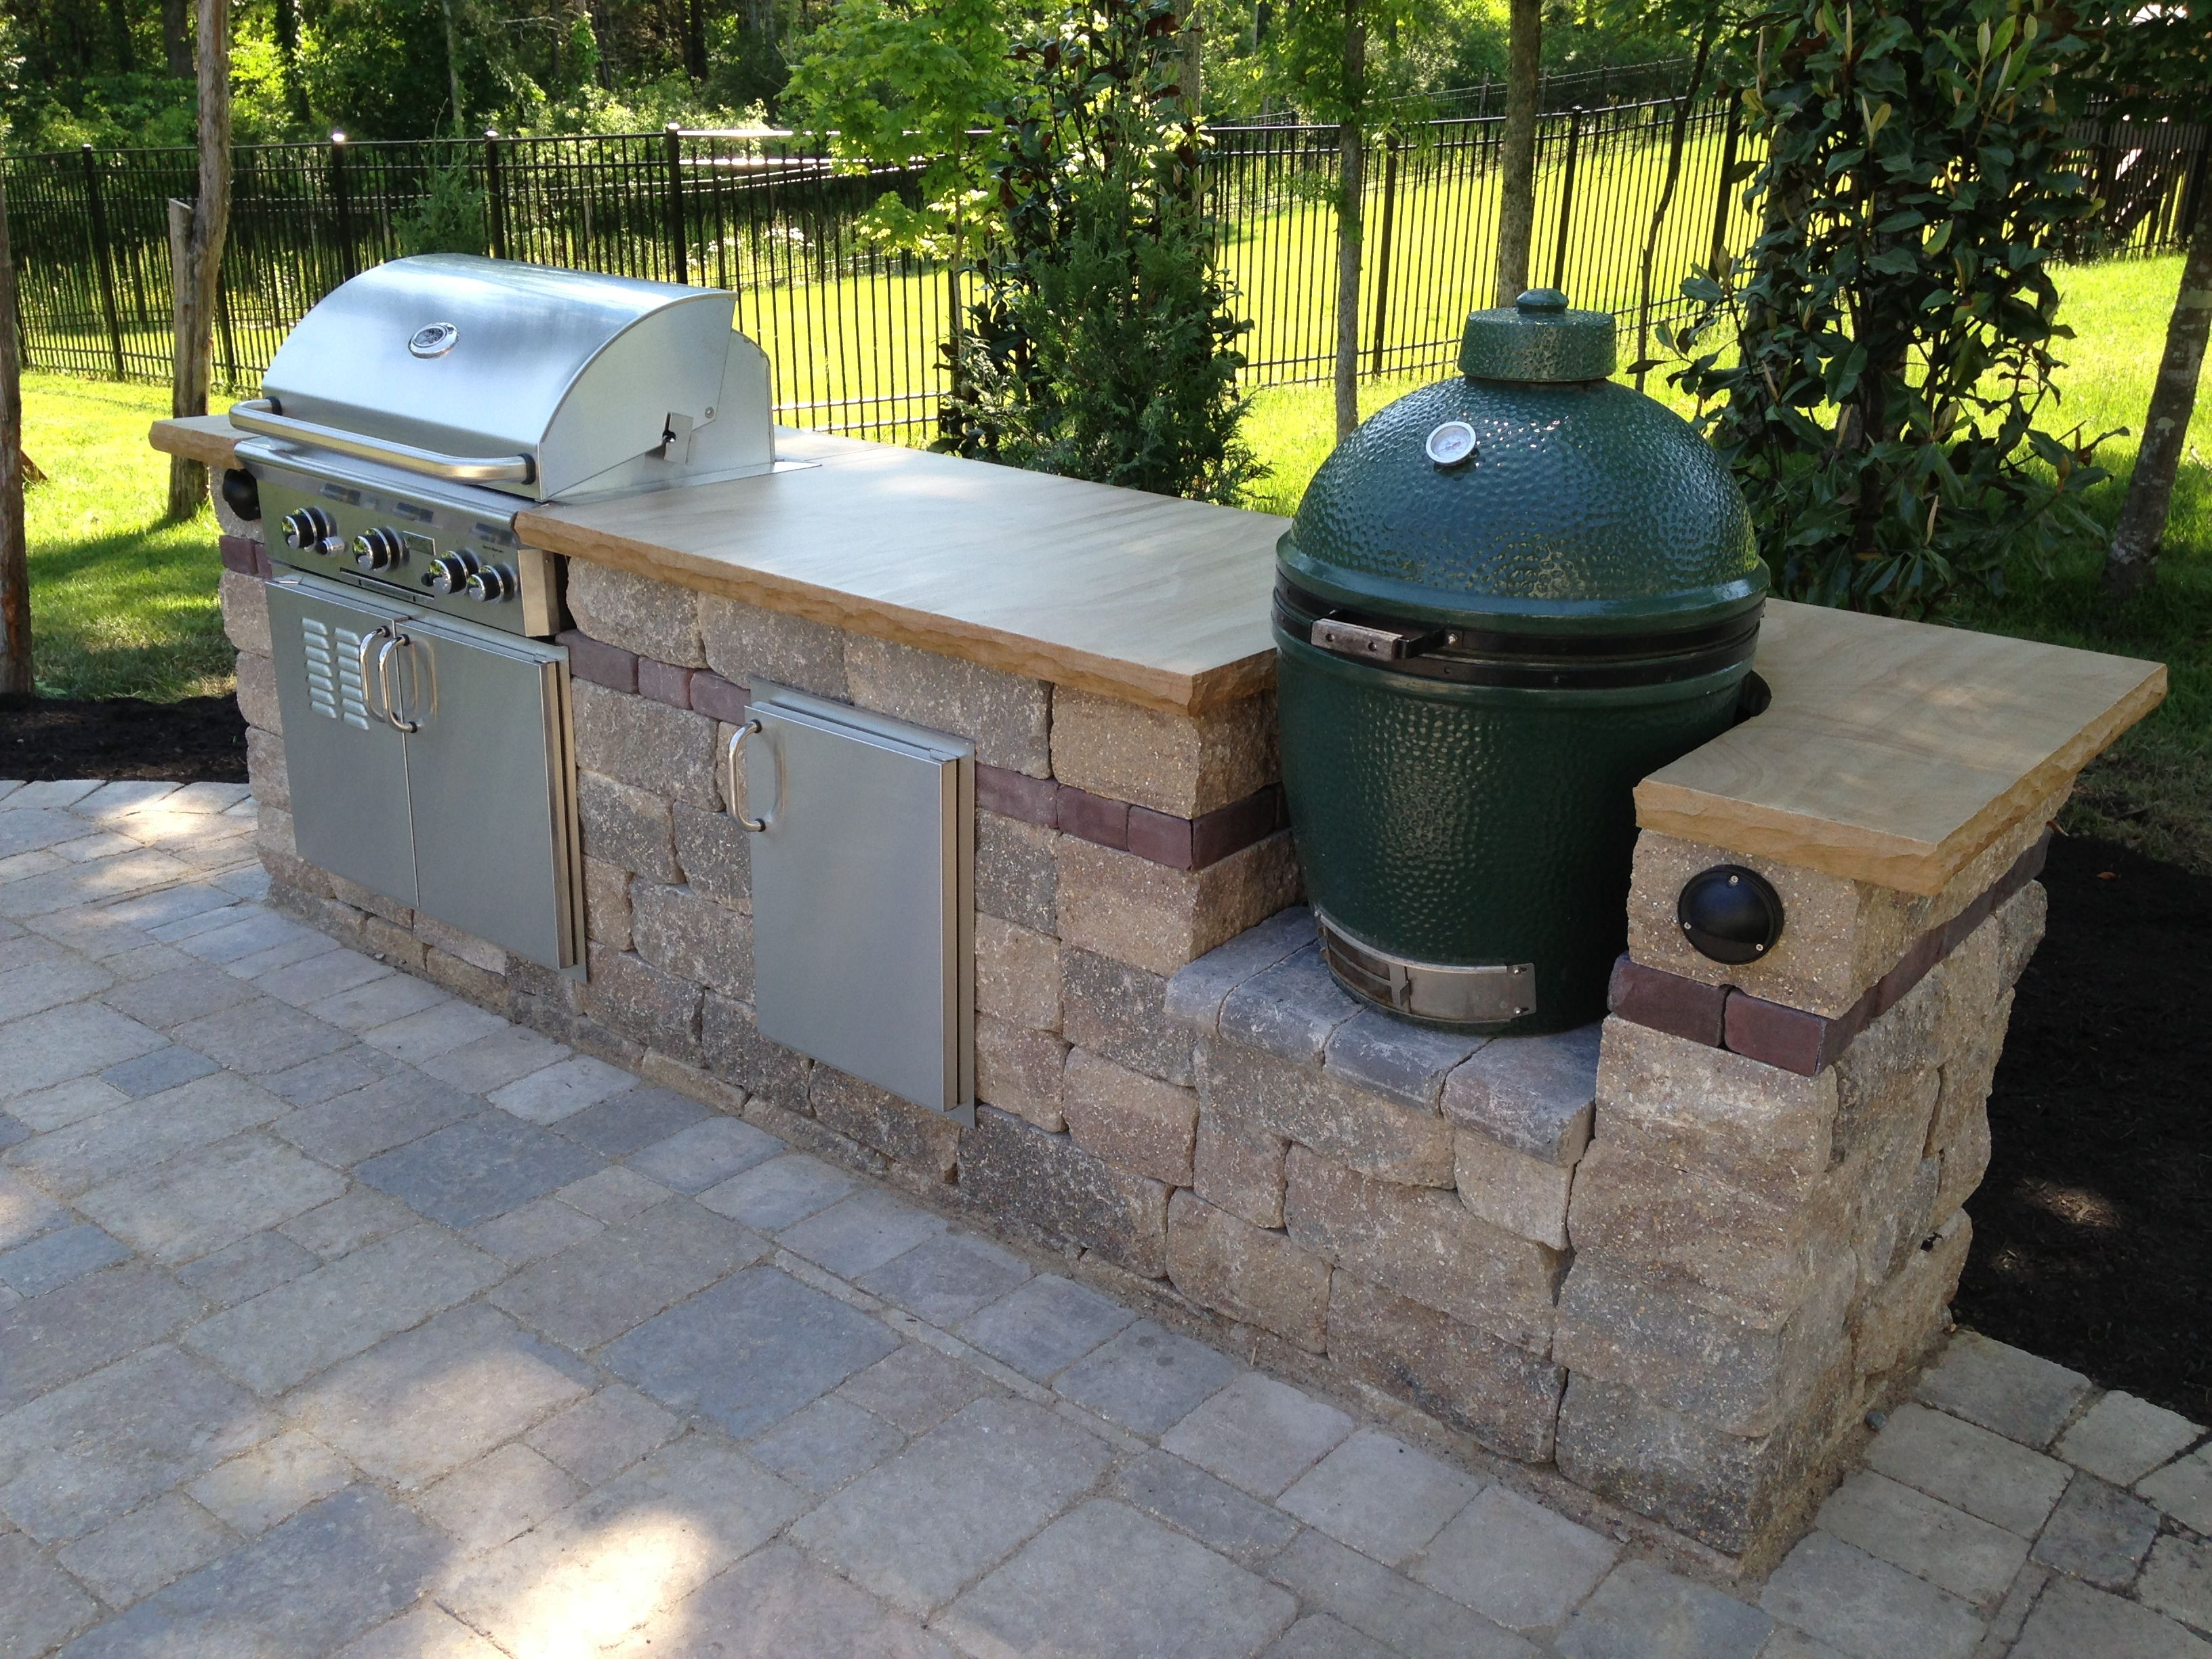 Outdoor Countertops Material Grill And Bge With Crab Orchard Stone Countertop Outdoor